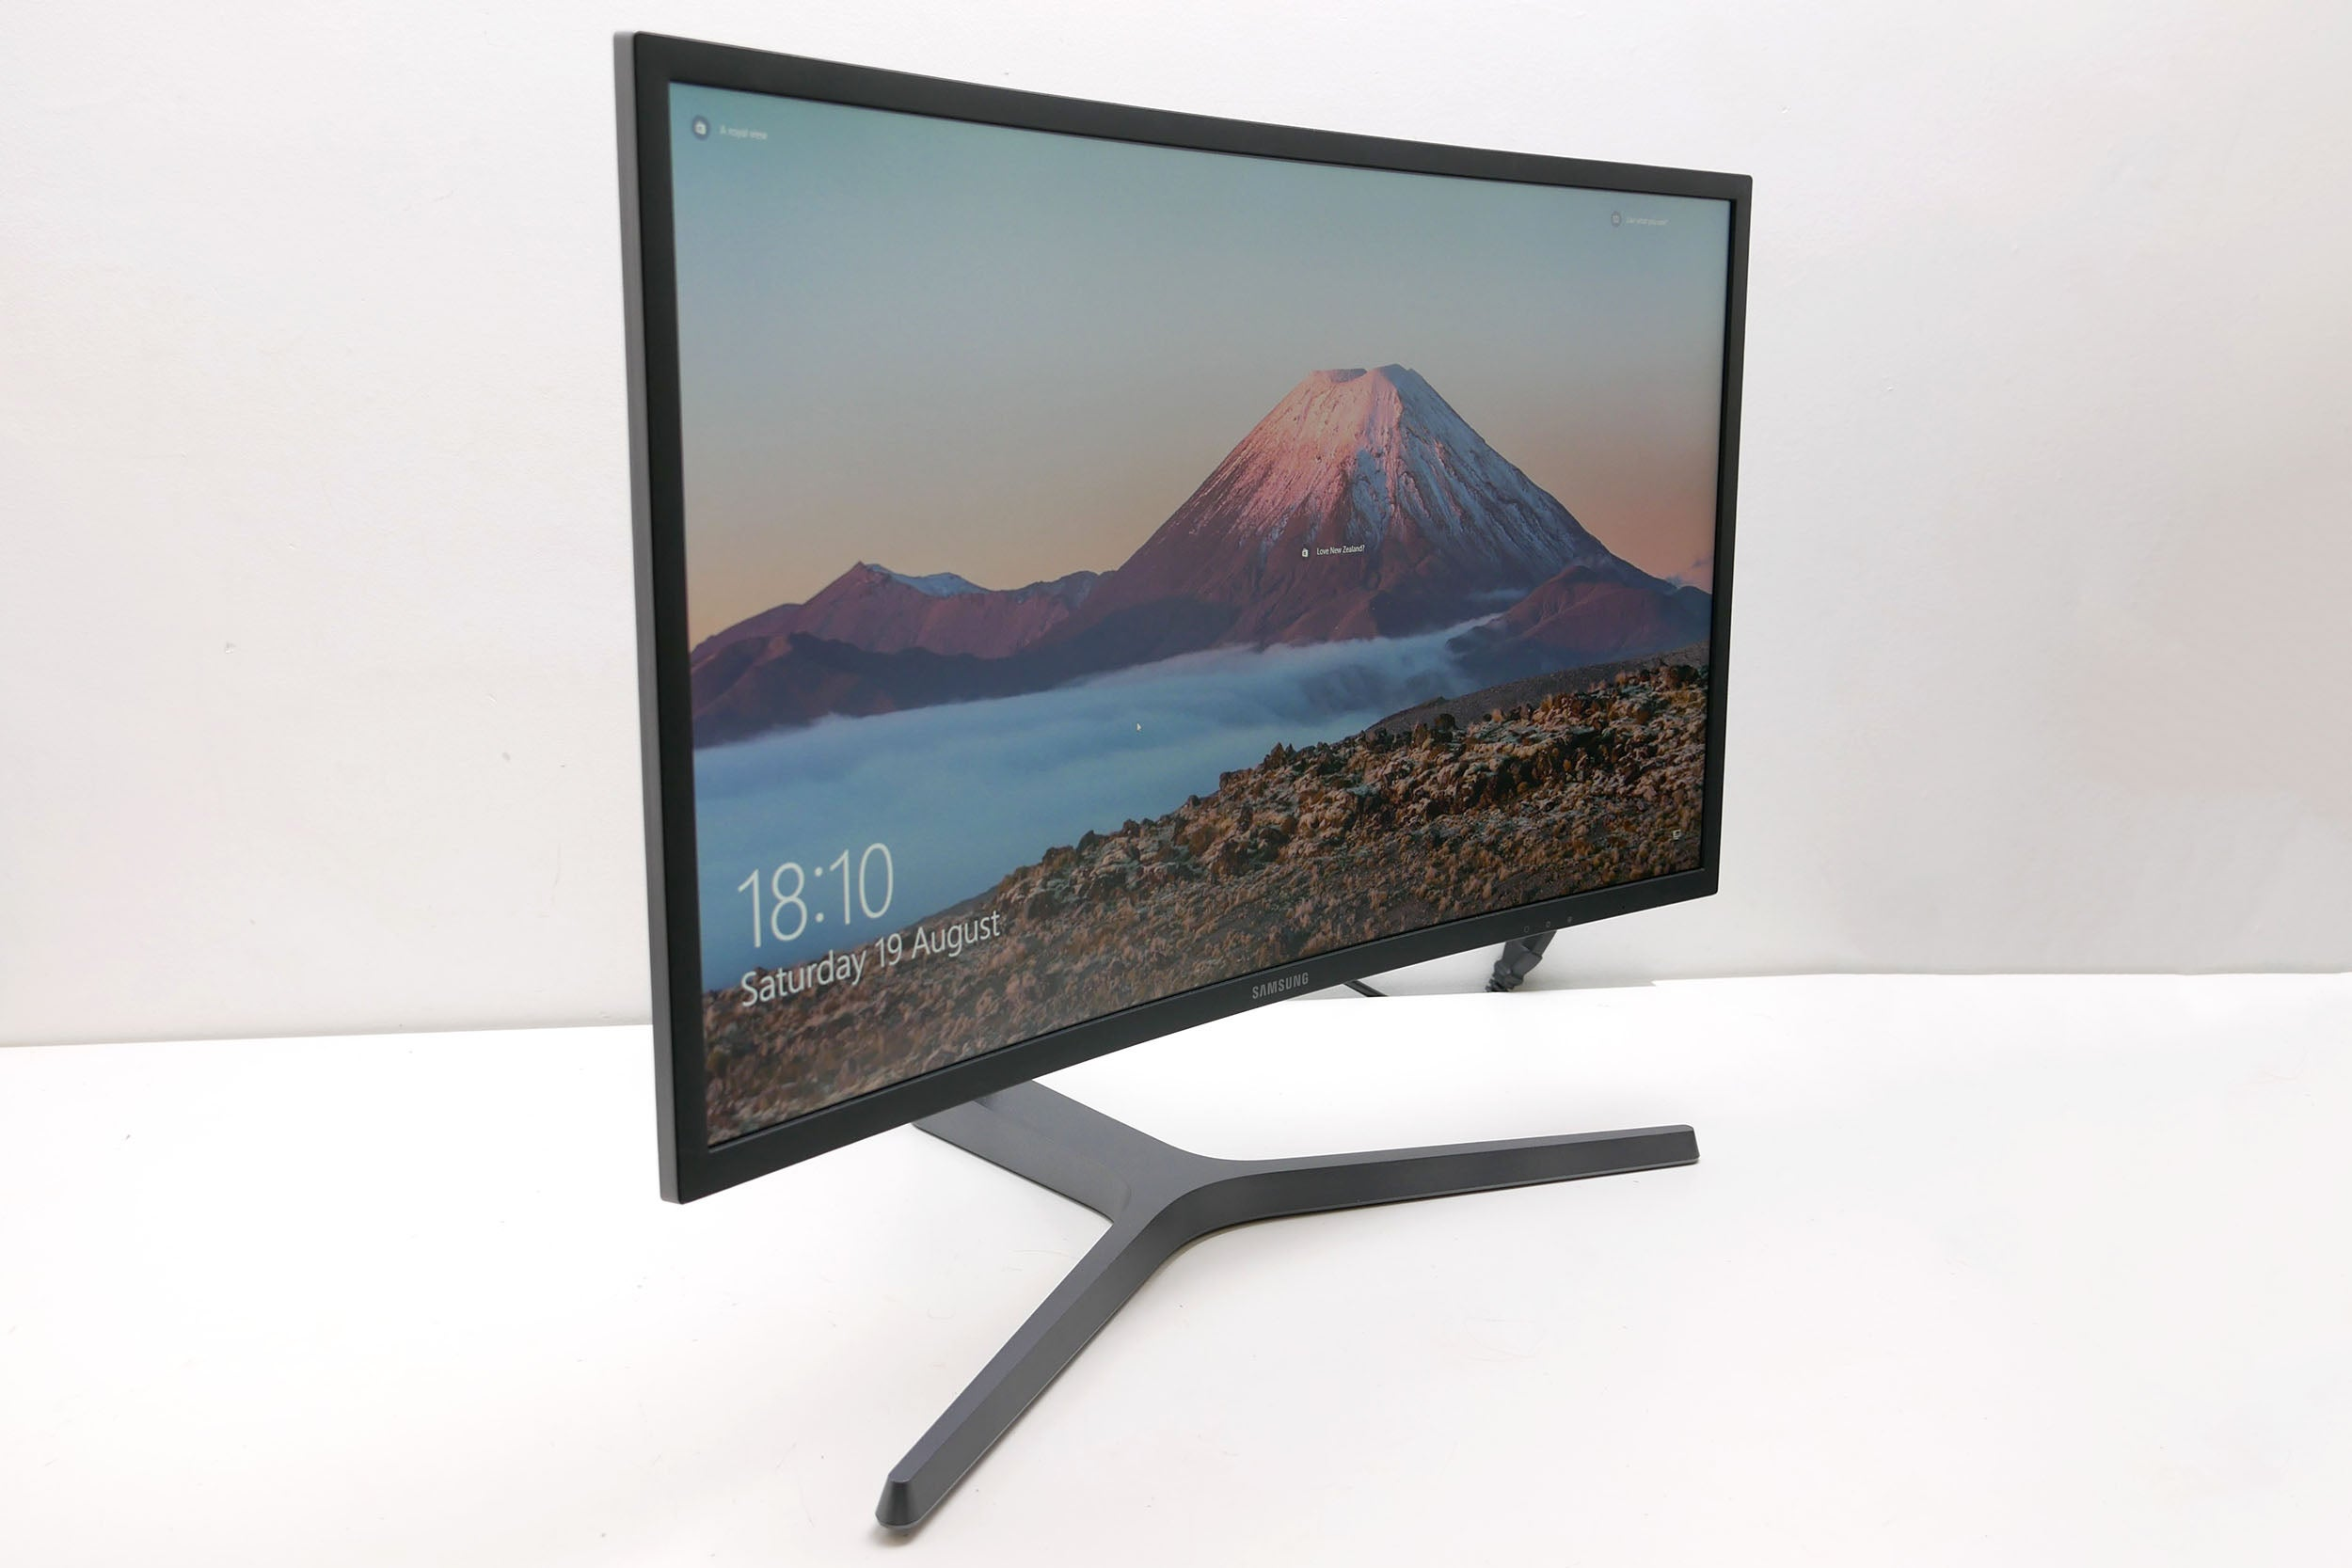 Samsung CHG70 Review: The new benchmark in gaming monitors | Trusted